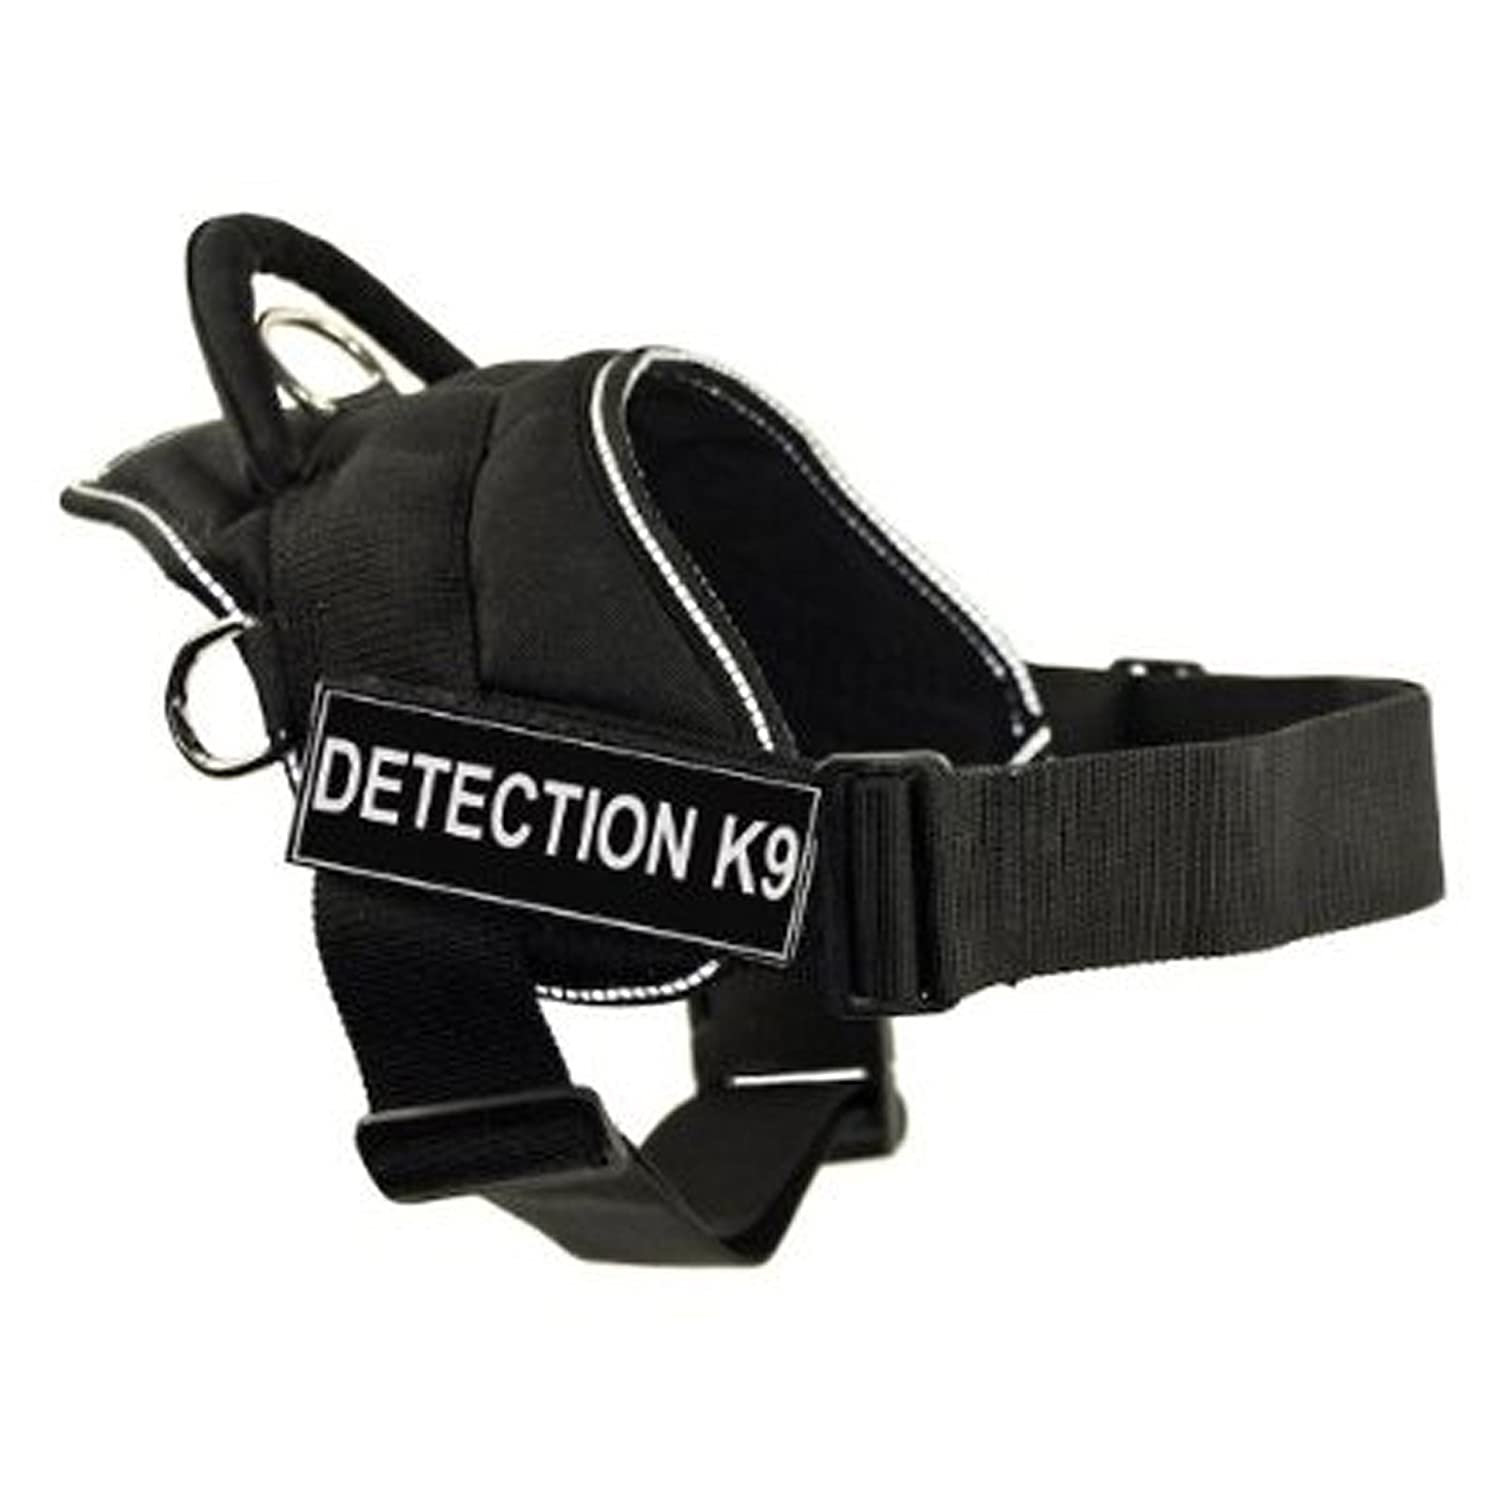 Dean & Tyler DT Fun Works Harness, Detection K9, Black With Reflective Trim, XX-Small Fits Girth Size  18-Inch to 22-Inch